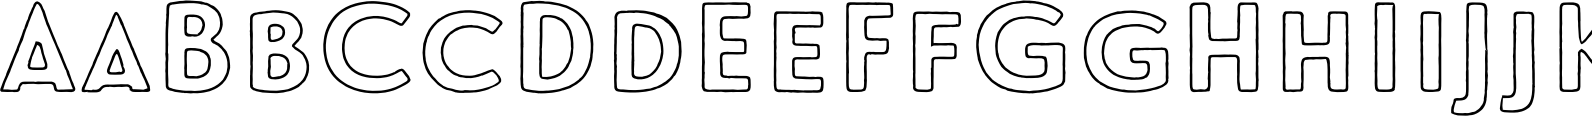 Le Havre Rough Outline Font